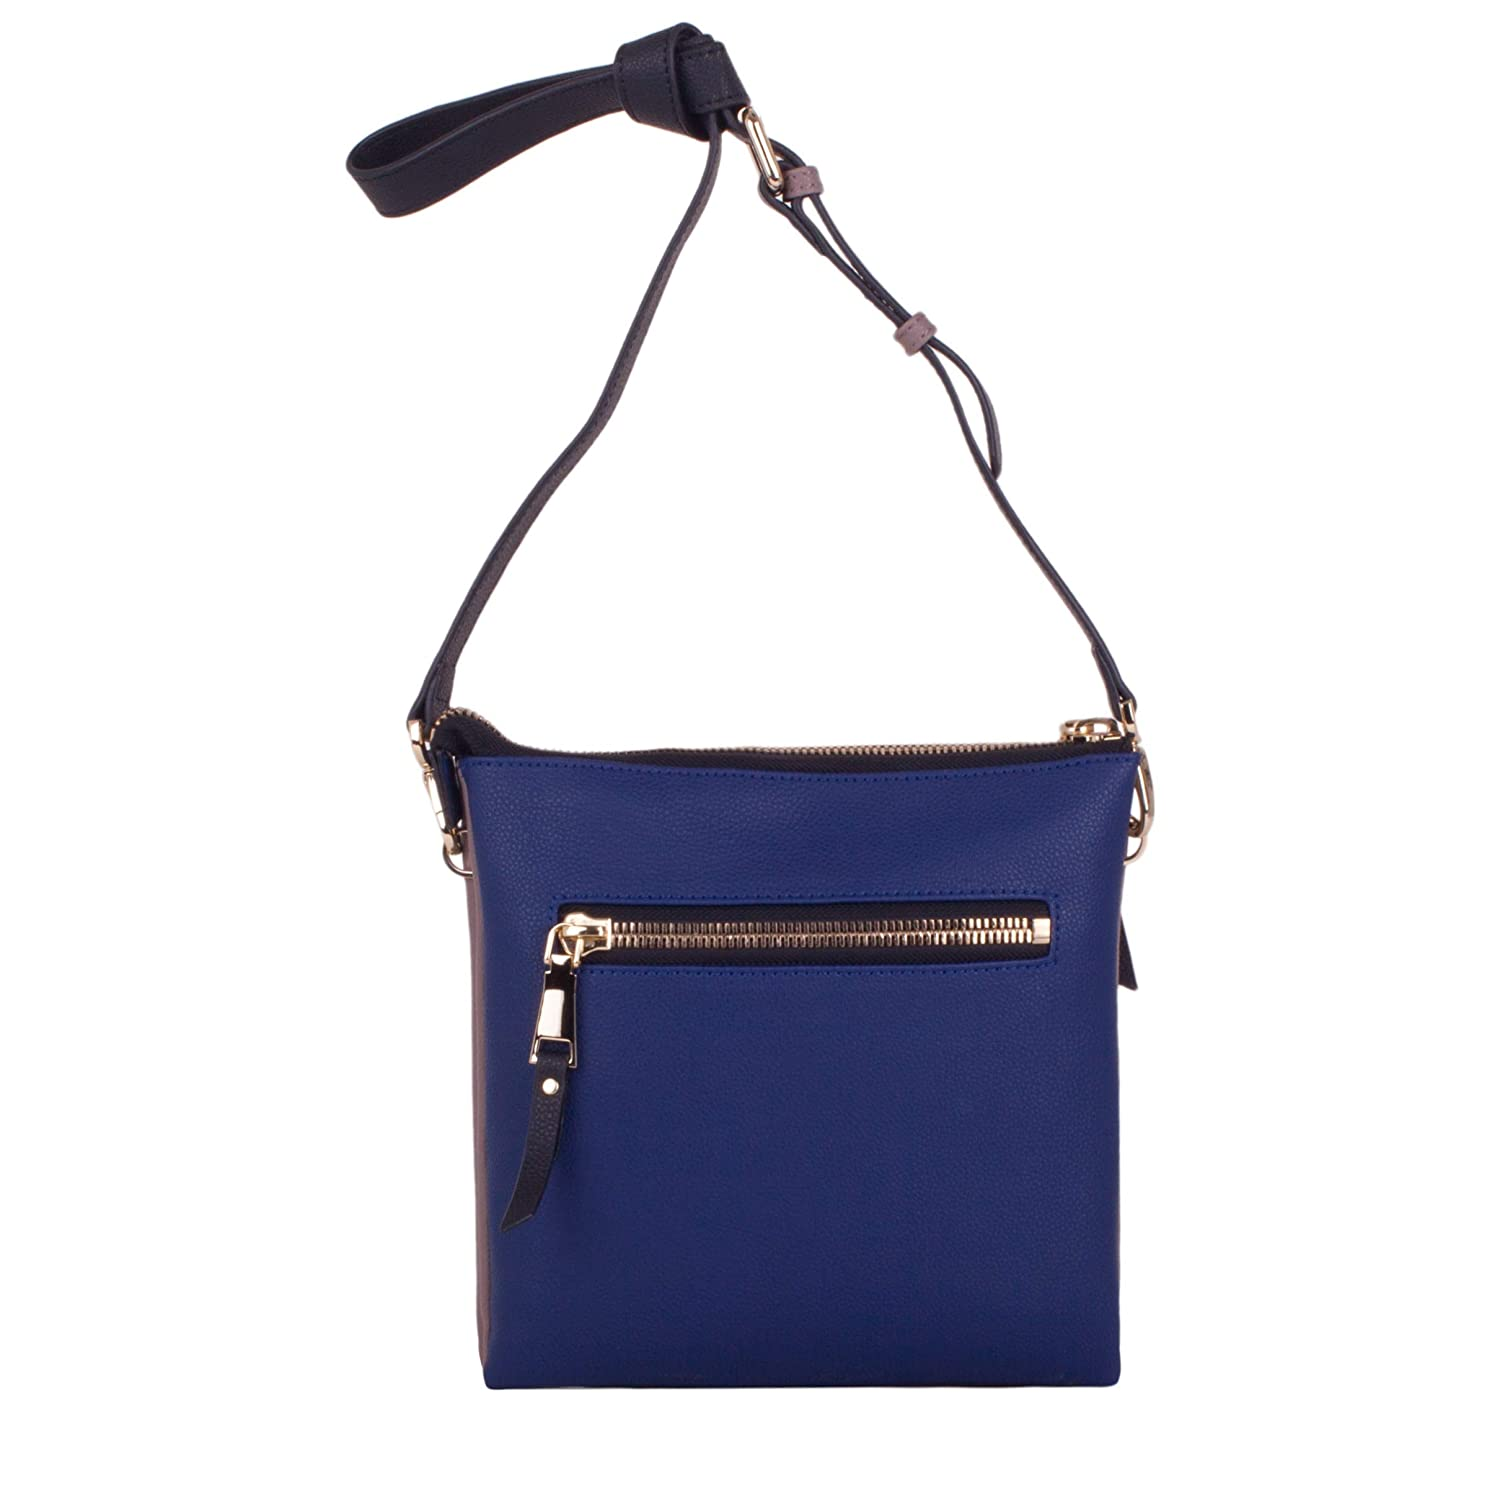 Smith   Canova Womens Zip Top Front Pocketed Cross Body Bag Shoulder Bag  Blue (Navy)  Amazon.co.uk  Shoes   Bags f9ddf9d5e9b23